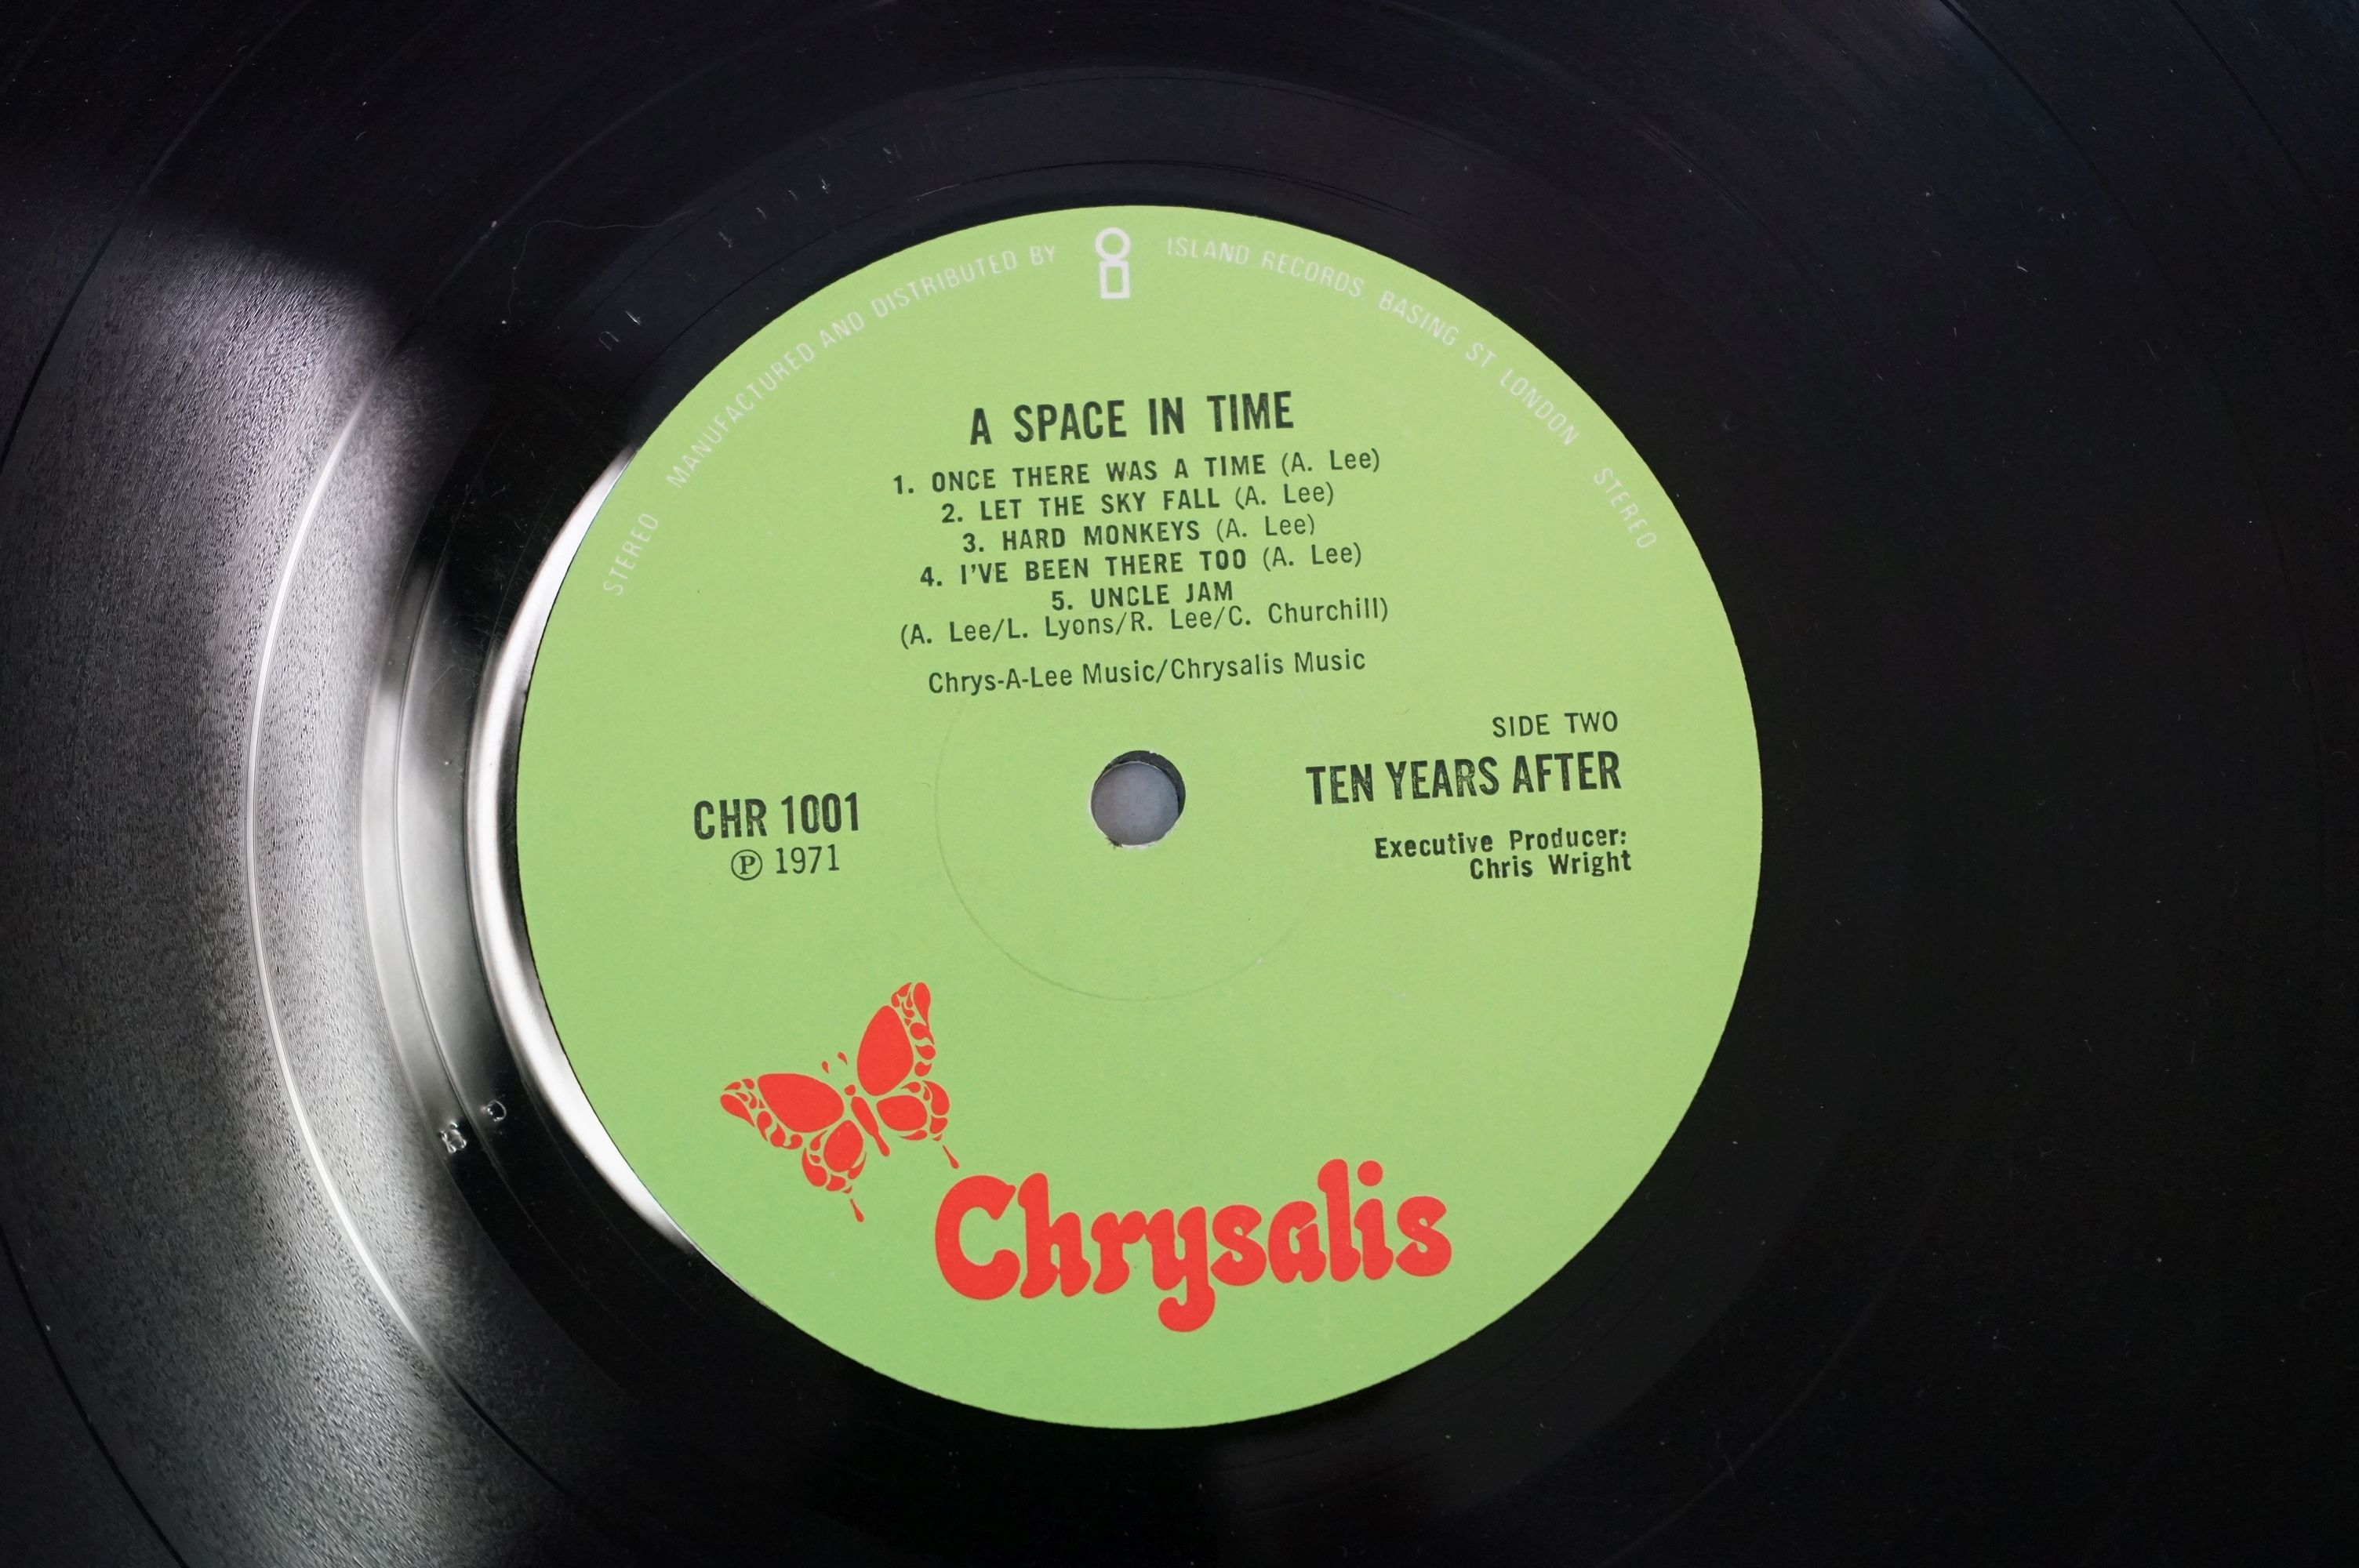 Vinyl - Ten Years After A Space In Time (CHR 1001) Green label with manufactured and distributed - Image 4 of 4